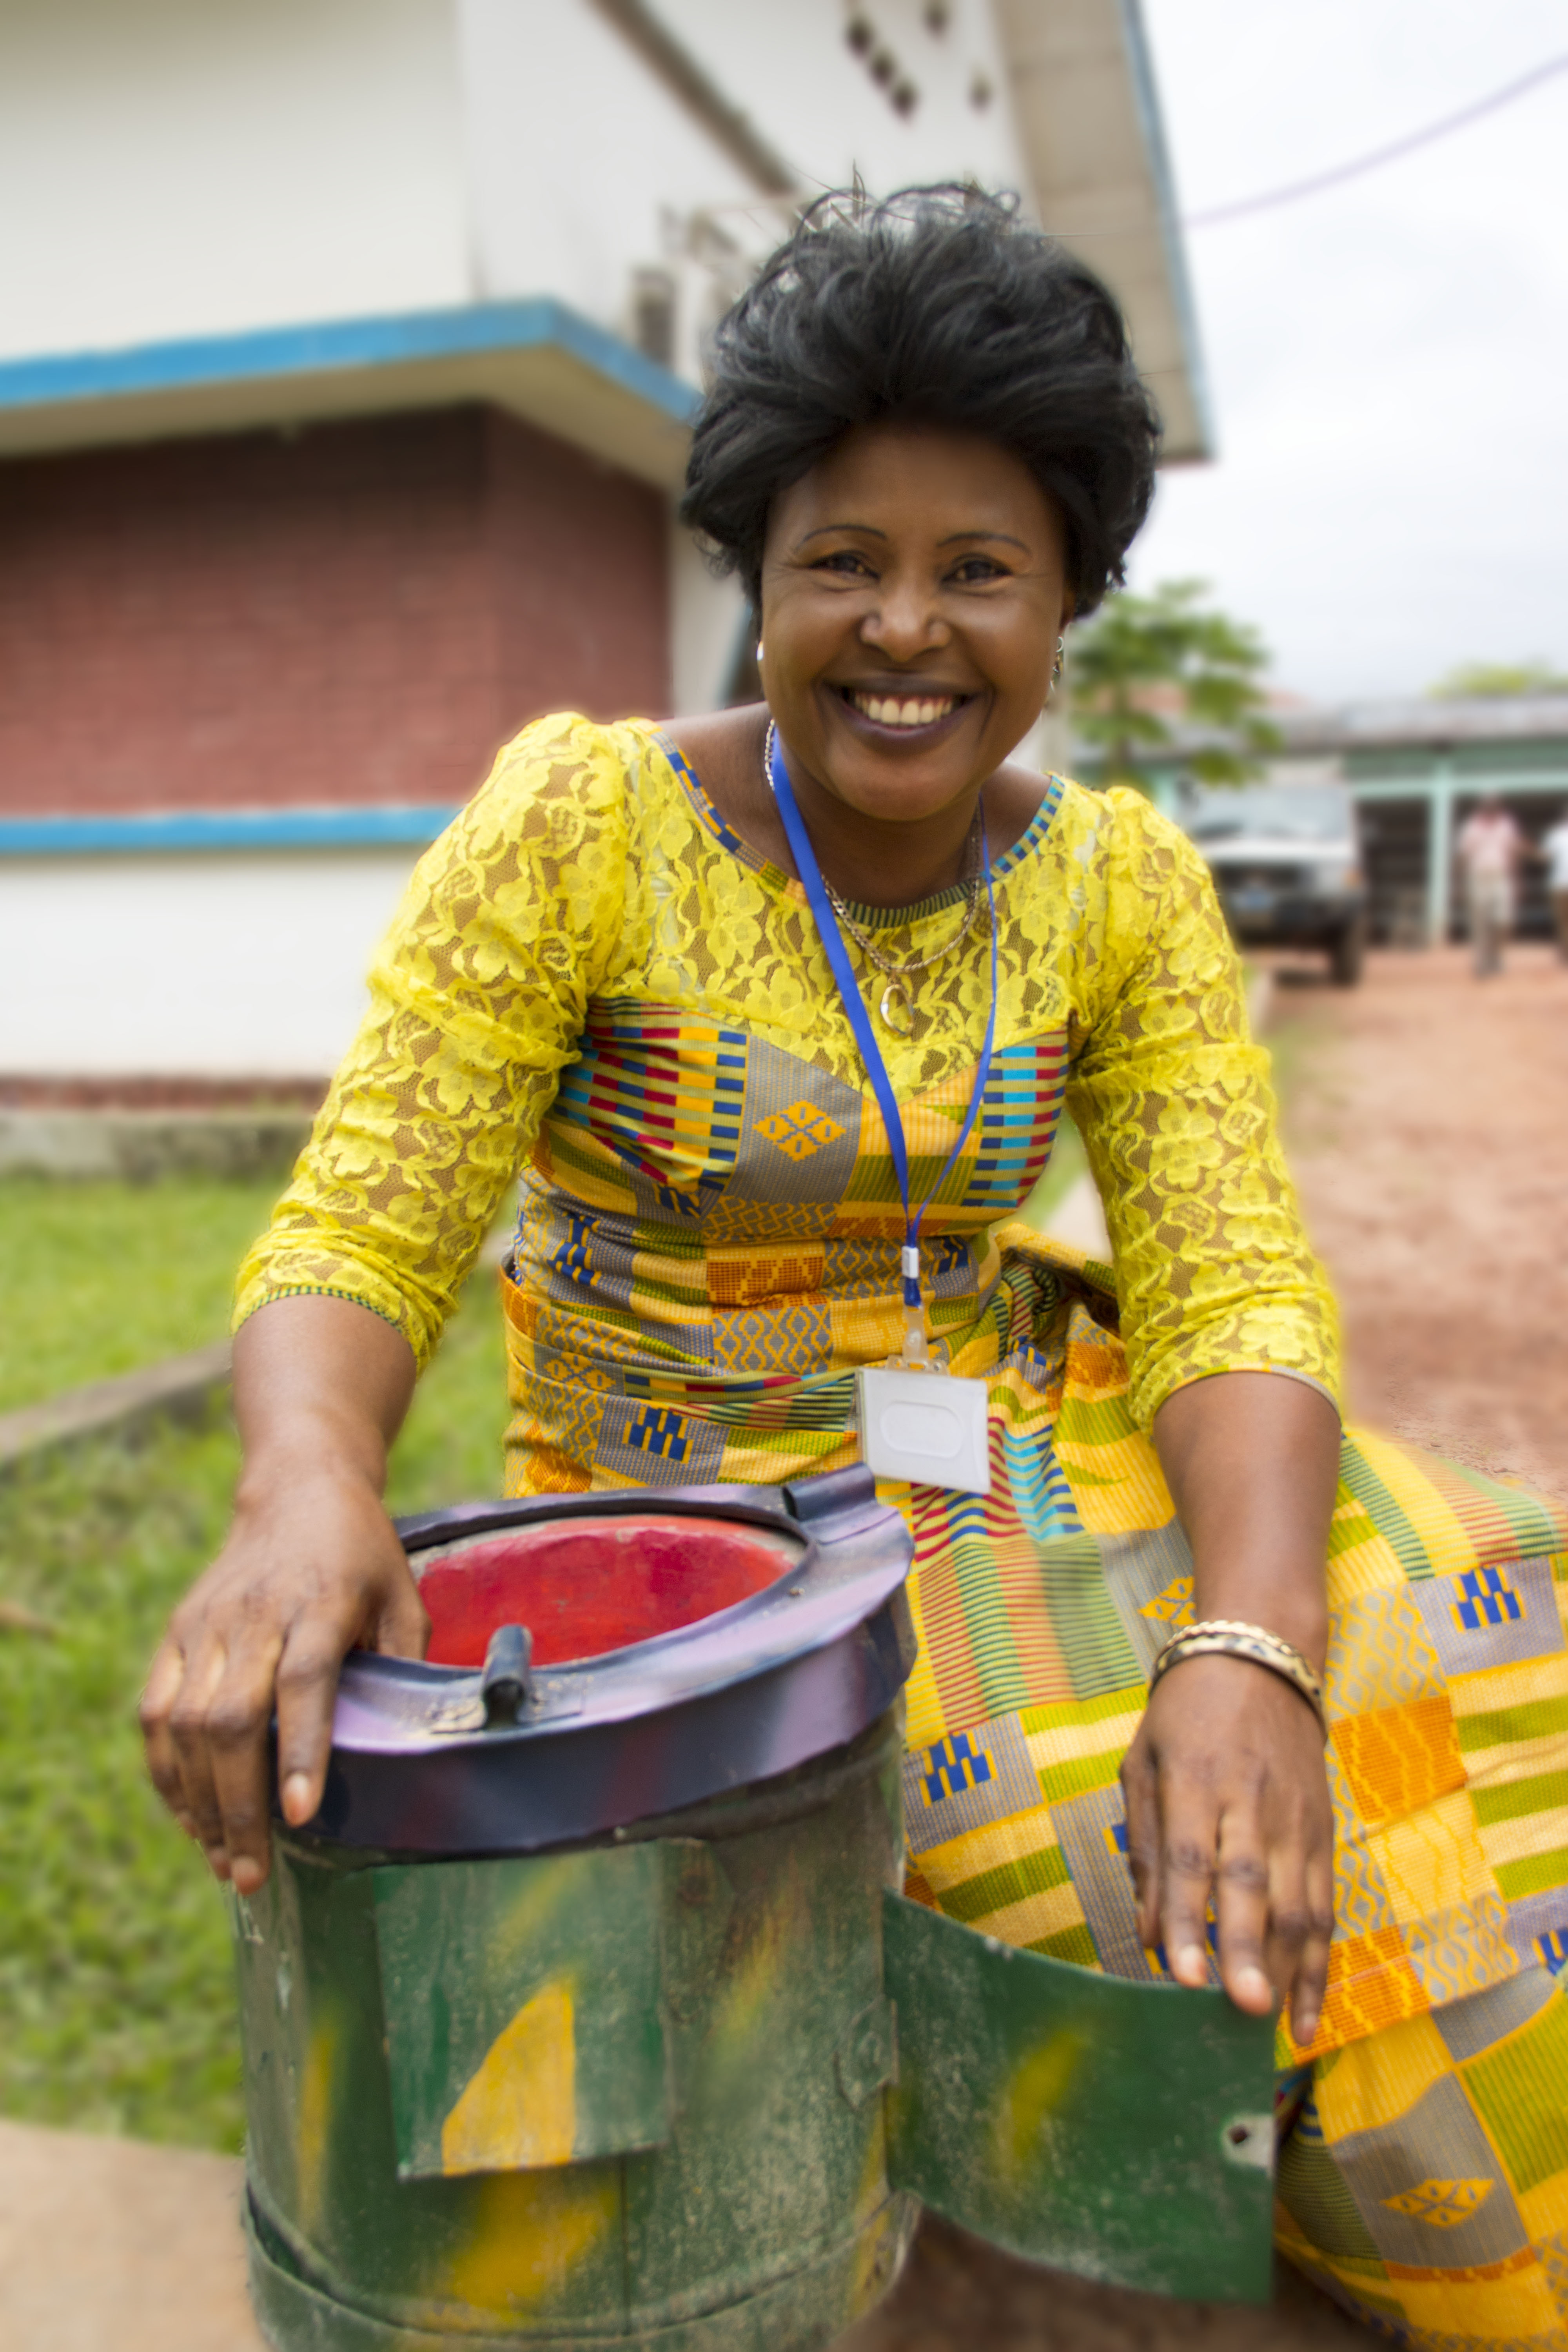 Claudine Biongo, the vice president of a network of local women's groups in Mbandaka, DRC, with a fuel-efficient stove. With support from WWF, this network is producing and selling these stoves, bringing in household incomewhile reducing the need for forest clearing. (Photo by Molly Bergen/WCS, WWF, WRI)